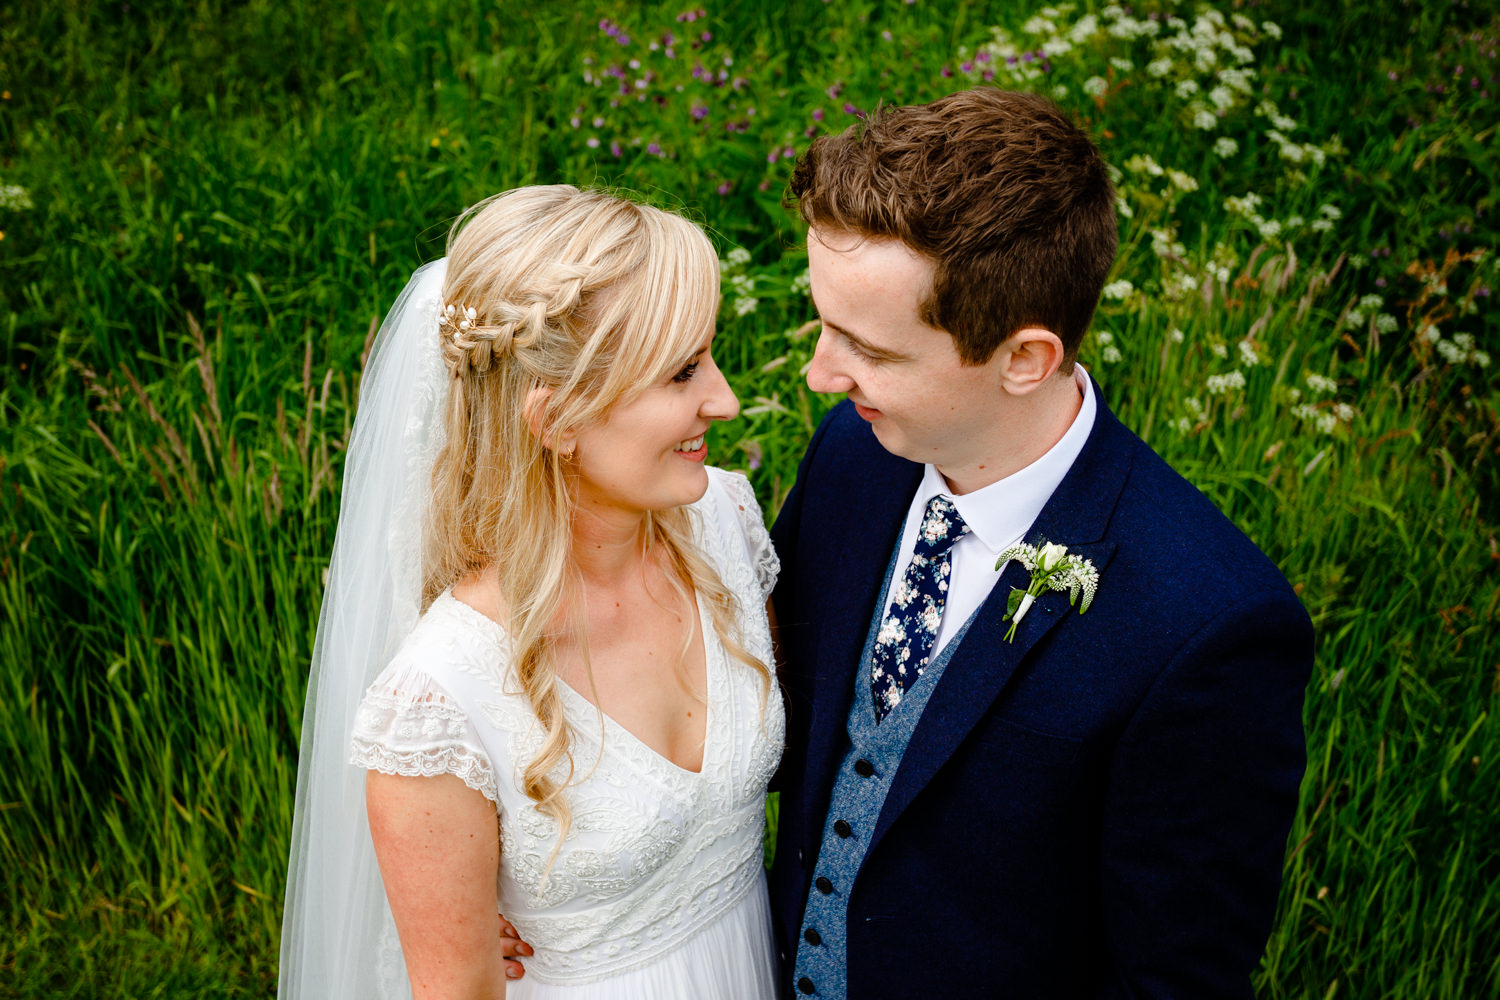 Katie-Luke-Huddersfield-wedding-photographer-Katie-Luke061.jpg